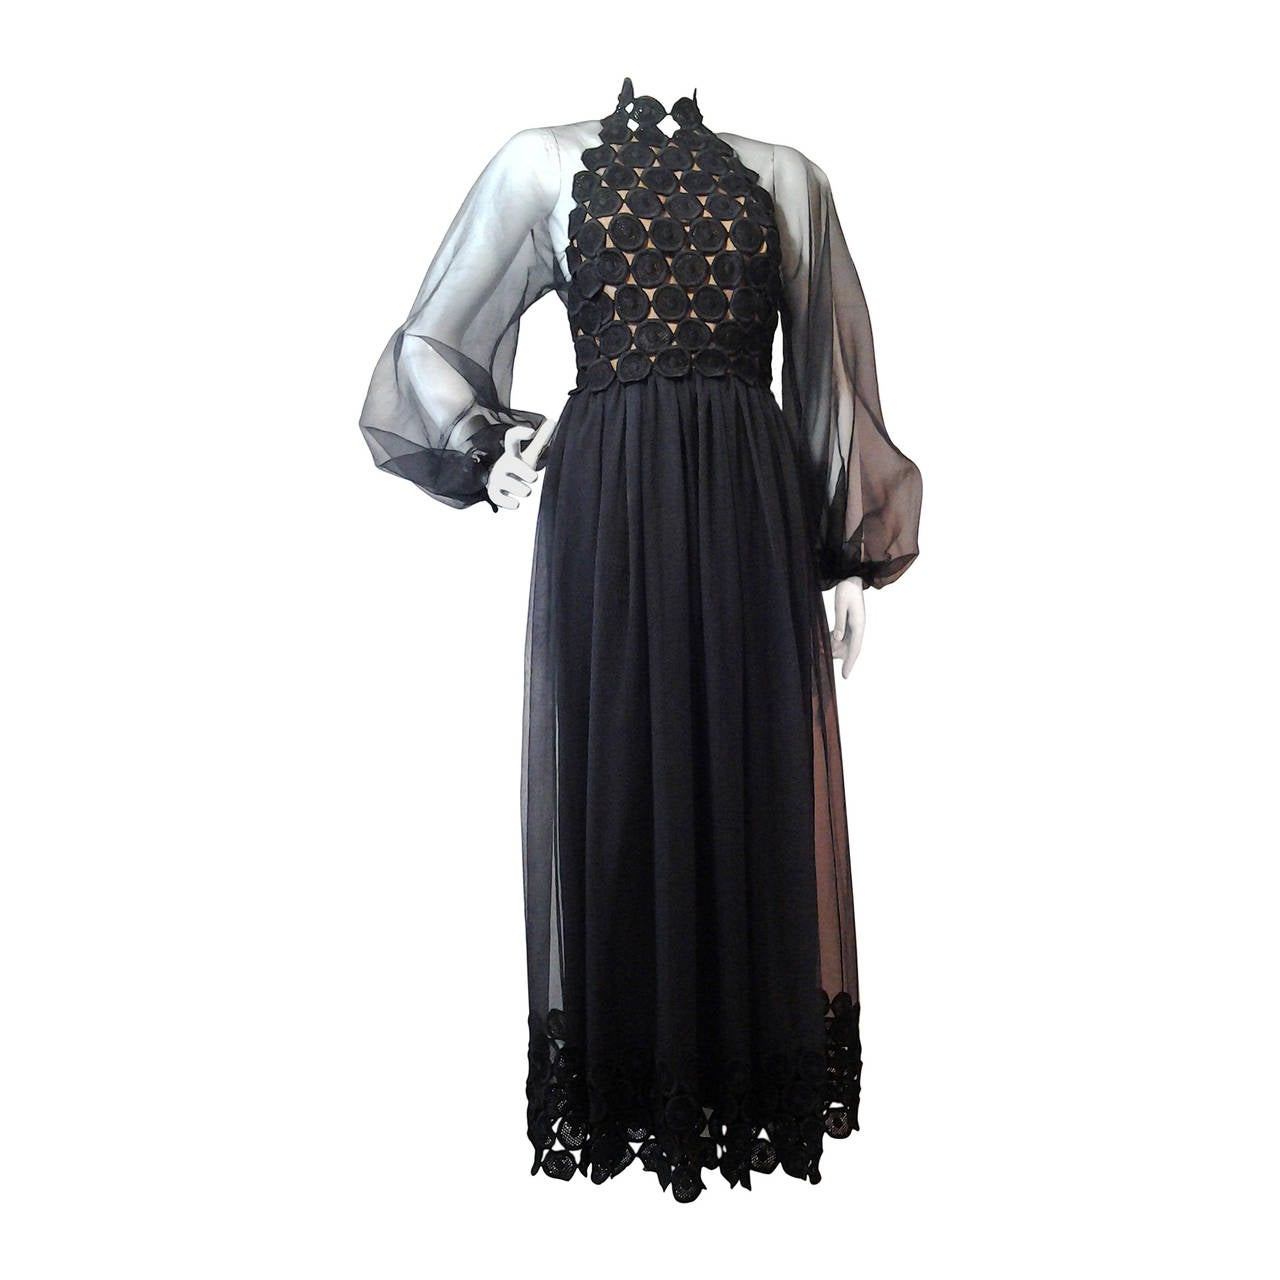 1970s Werle Hostess Gown in Black Chiffon and Circular Lace